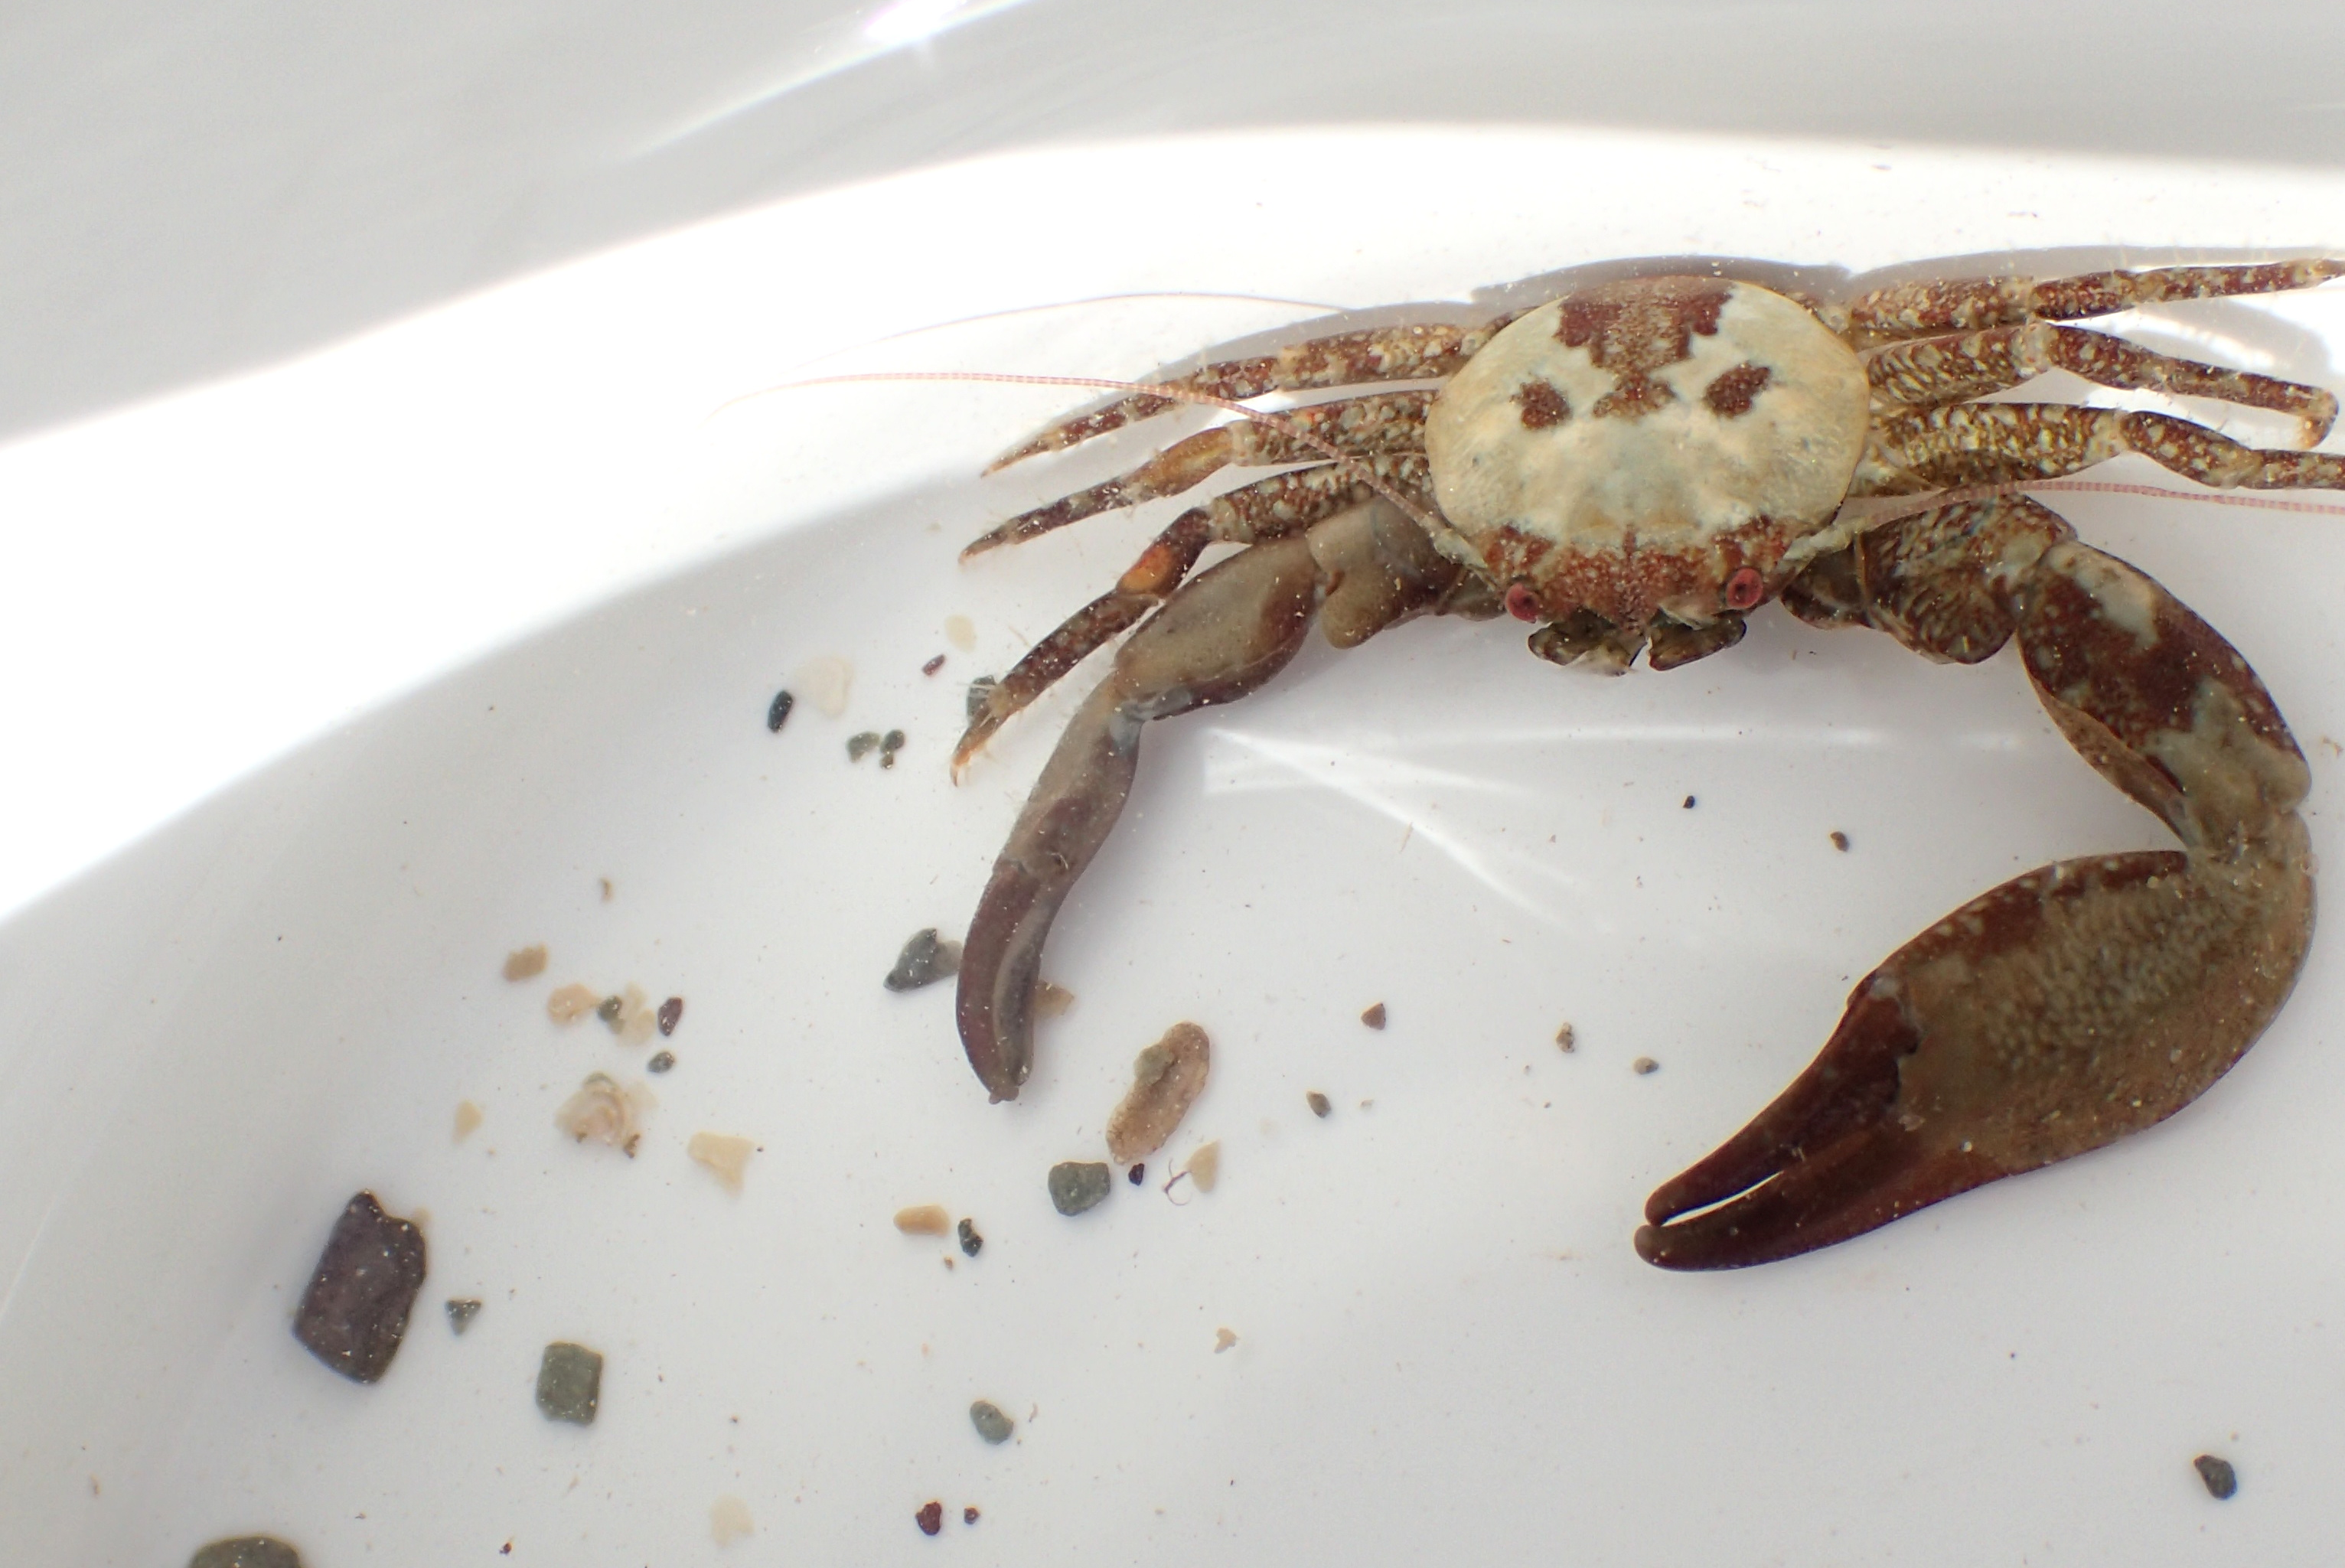 A long-clawed porcelain crab. These crabs are very small and cling to the bottom of rocks.